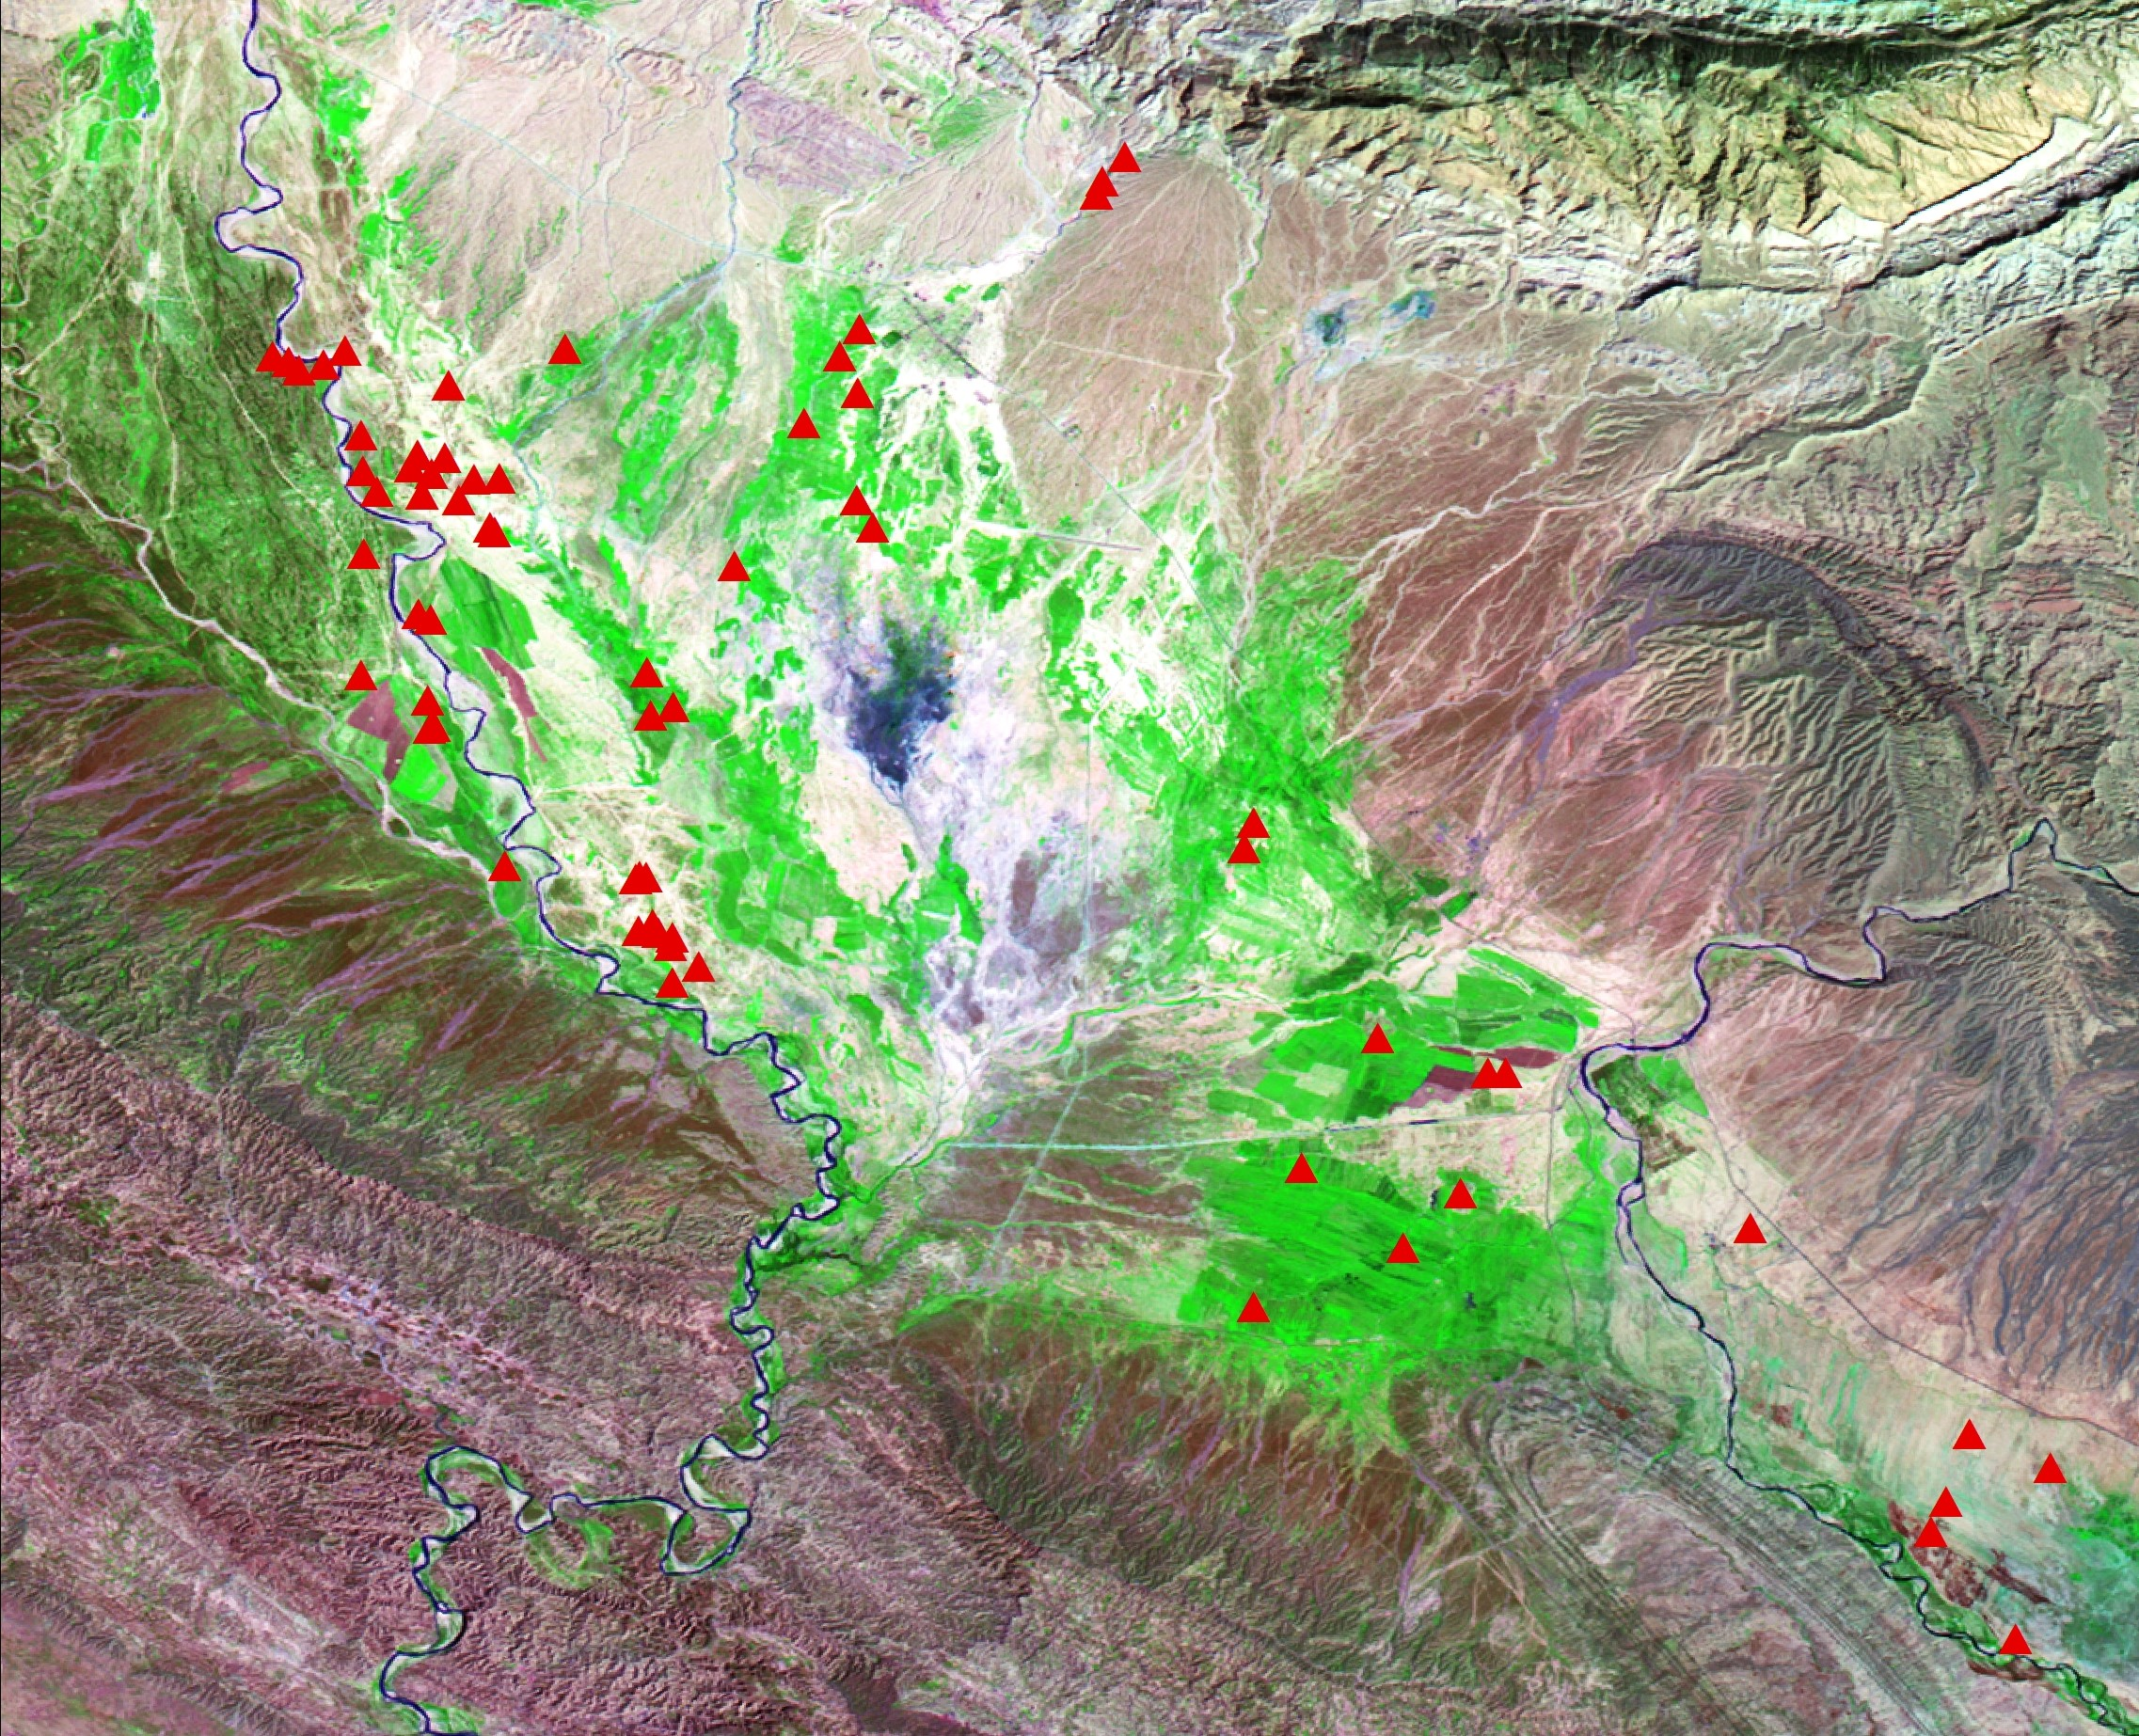 Analysis of Land, Water, and Settlement Through Remote Sensing and Ground Survey: